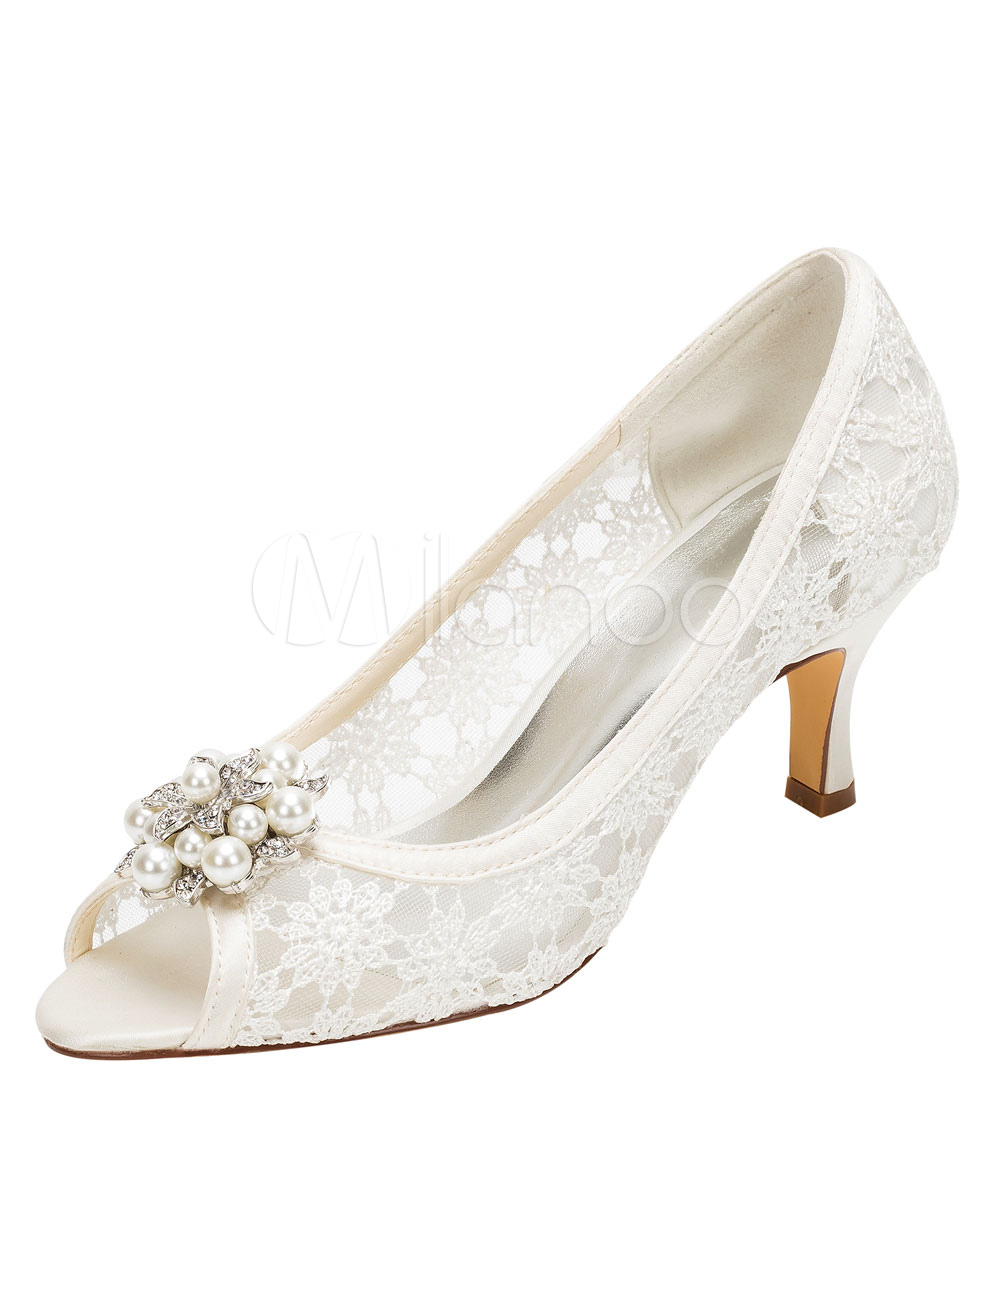 Lace Wedding Shoes High Heel Ivory Peep Pumps Pearl Rhinestone Slip-on Bridal Shoes